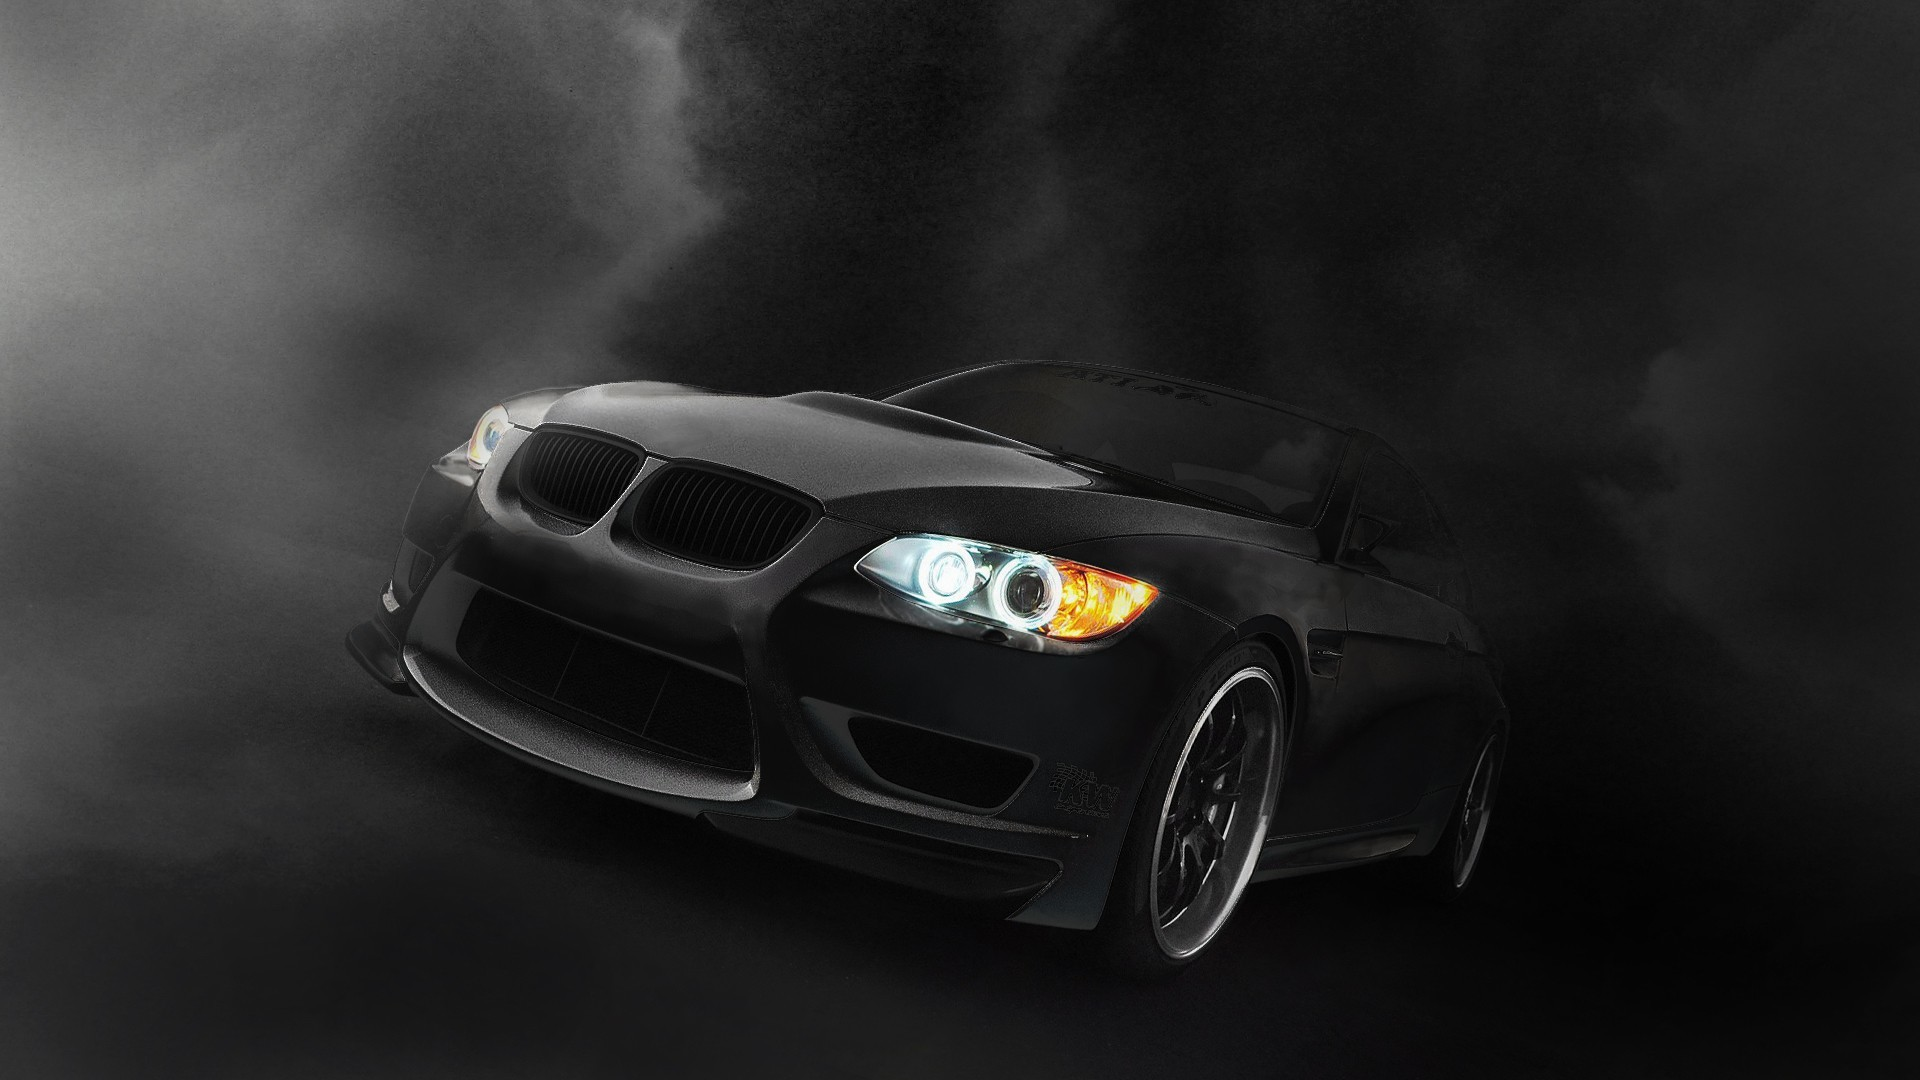 BMW black dark cars